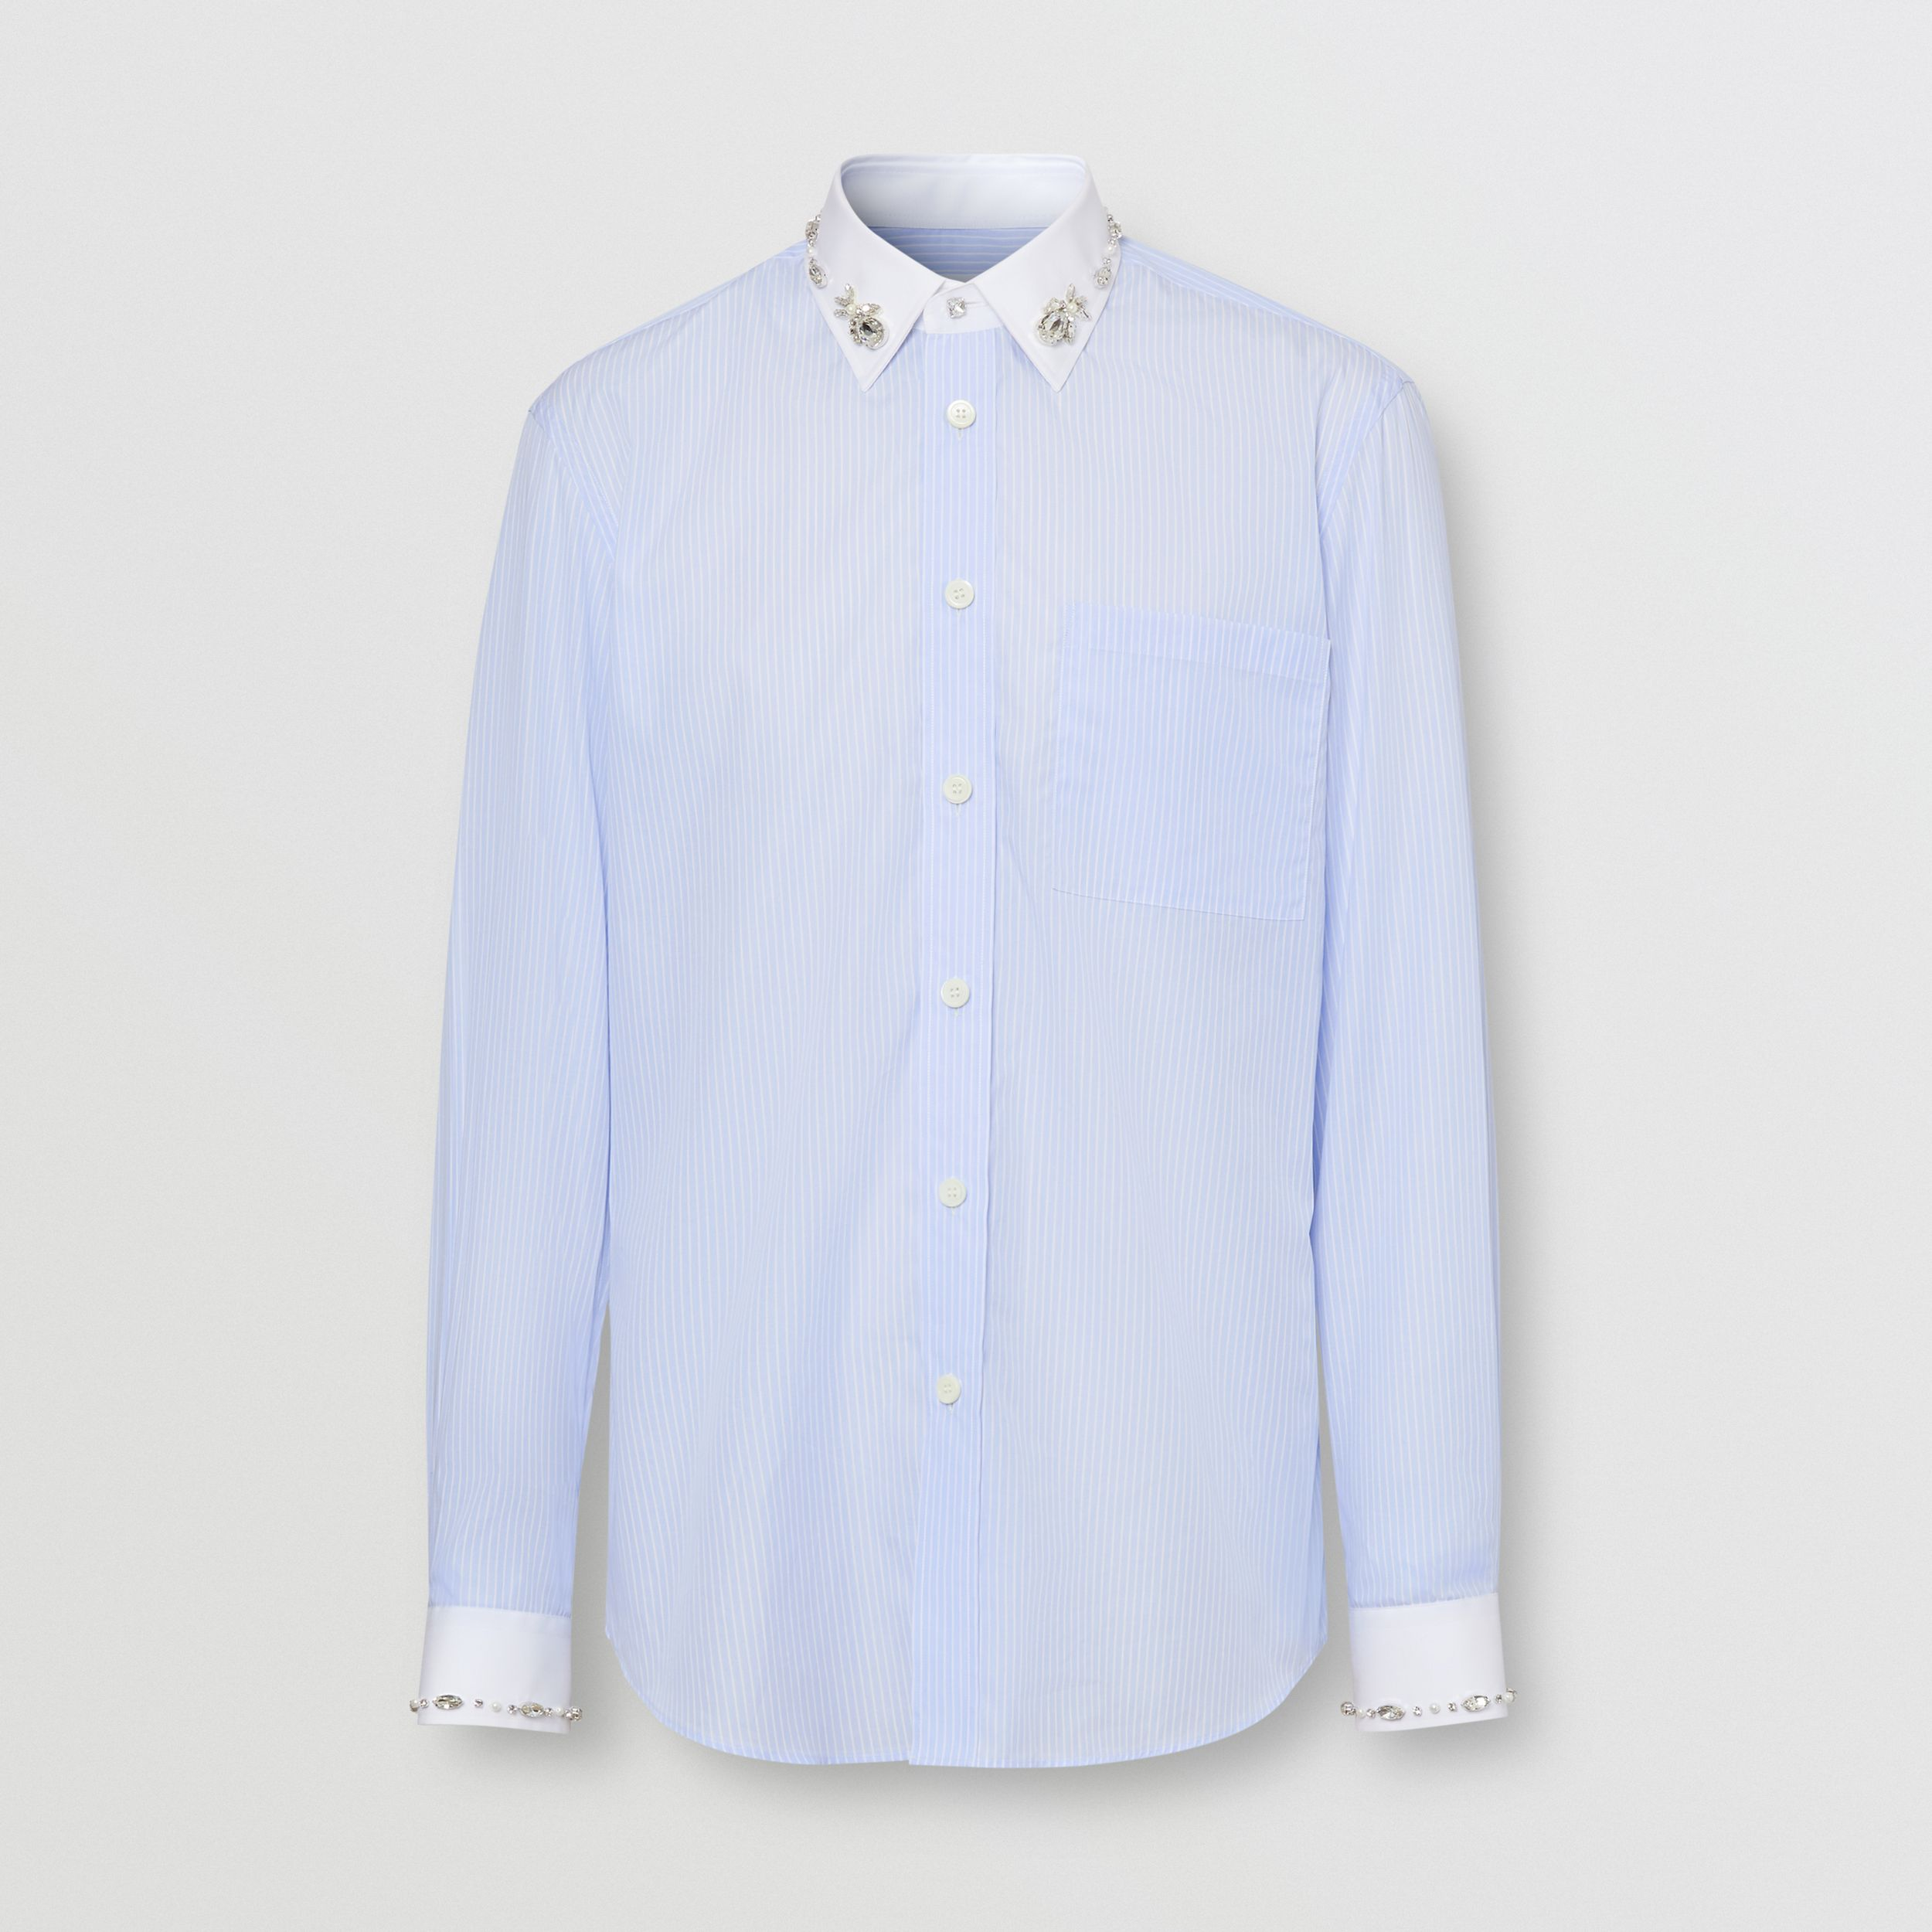 Classic Fit Embellished Pinstriped Cotton Shirt in Pale Blue - Men | Burberry - 4